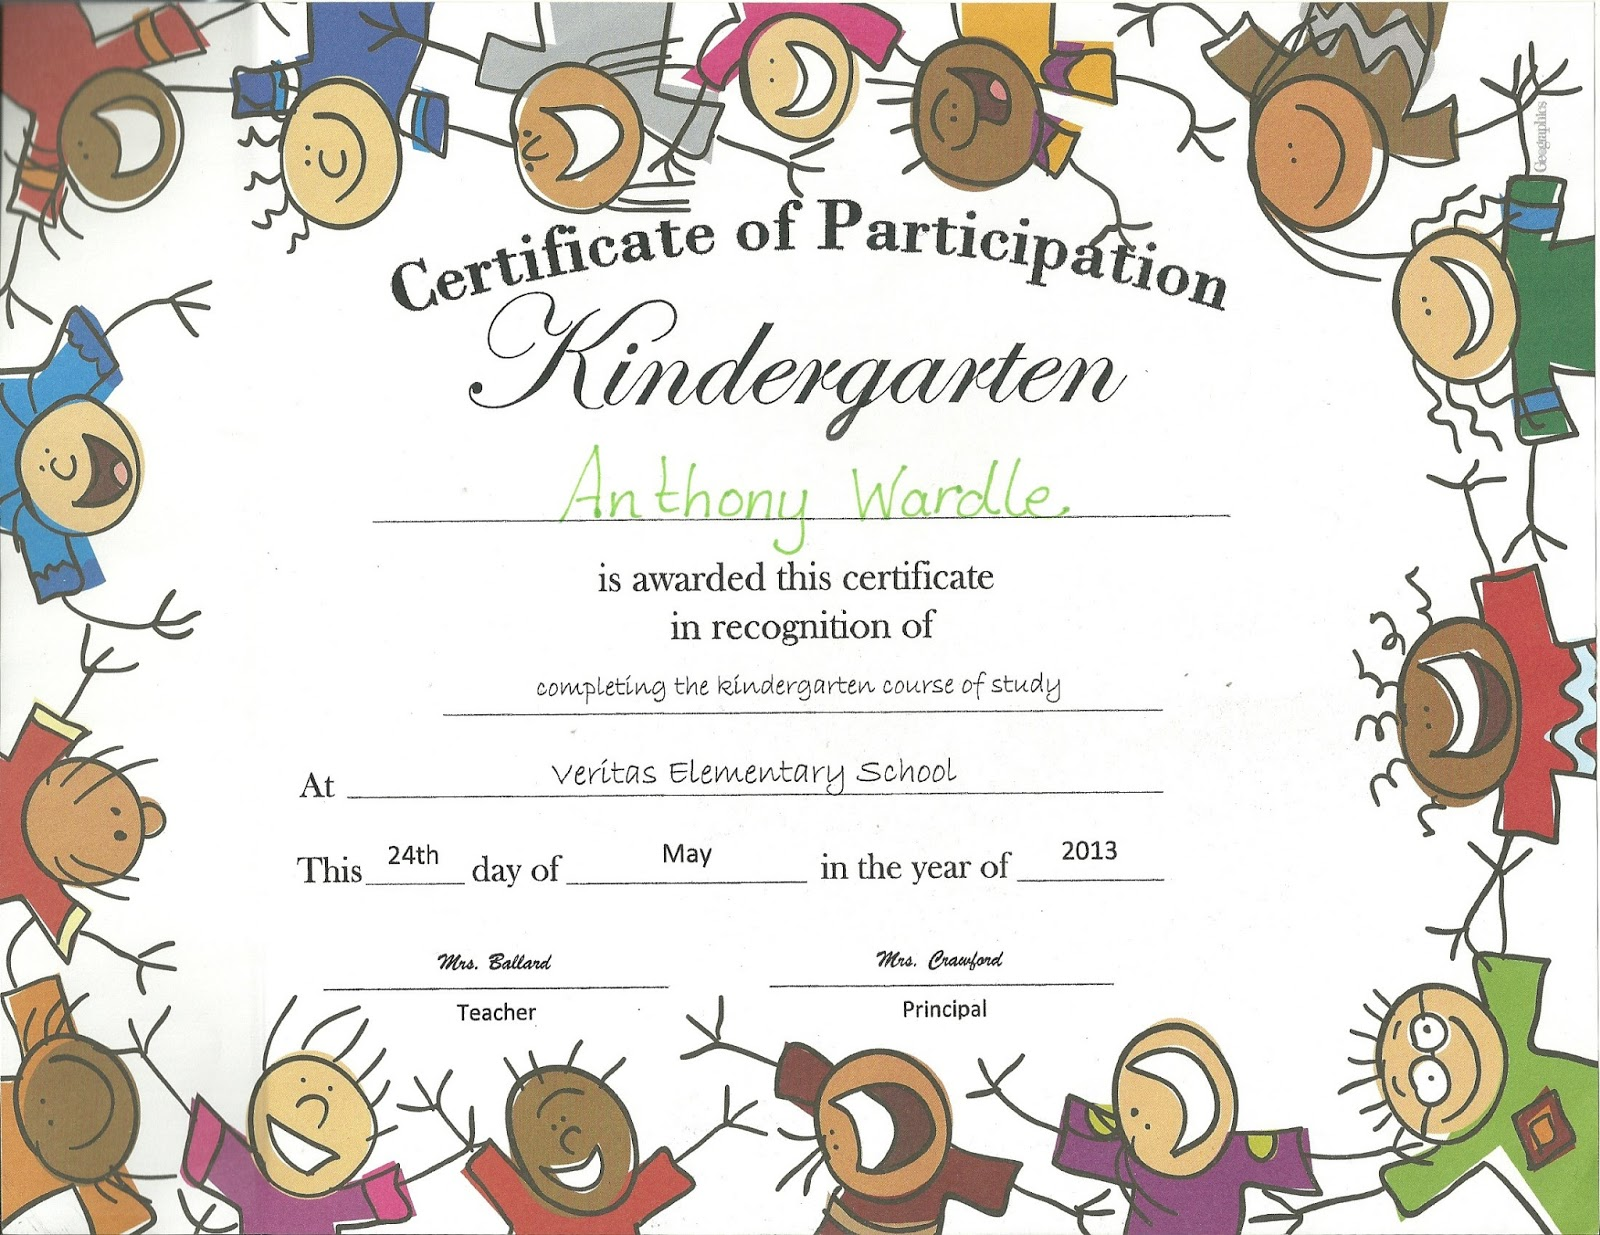 billy wardle family blog tony s kindergarten certificate